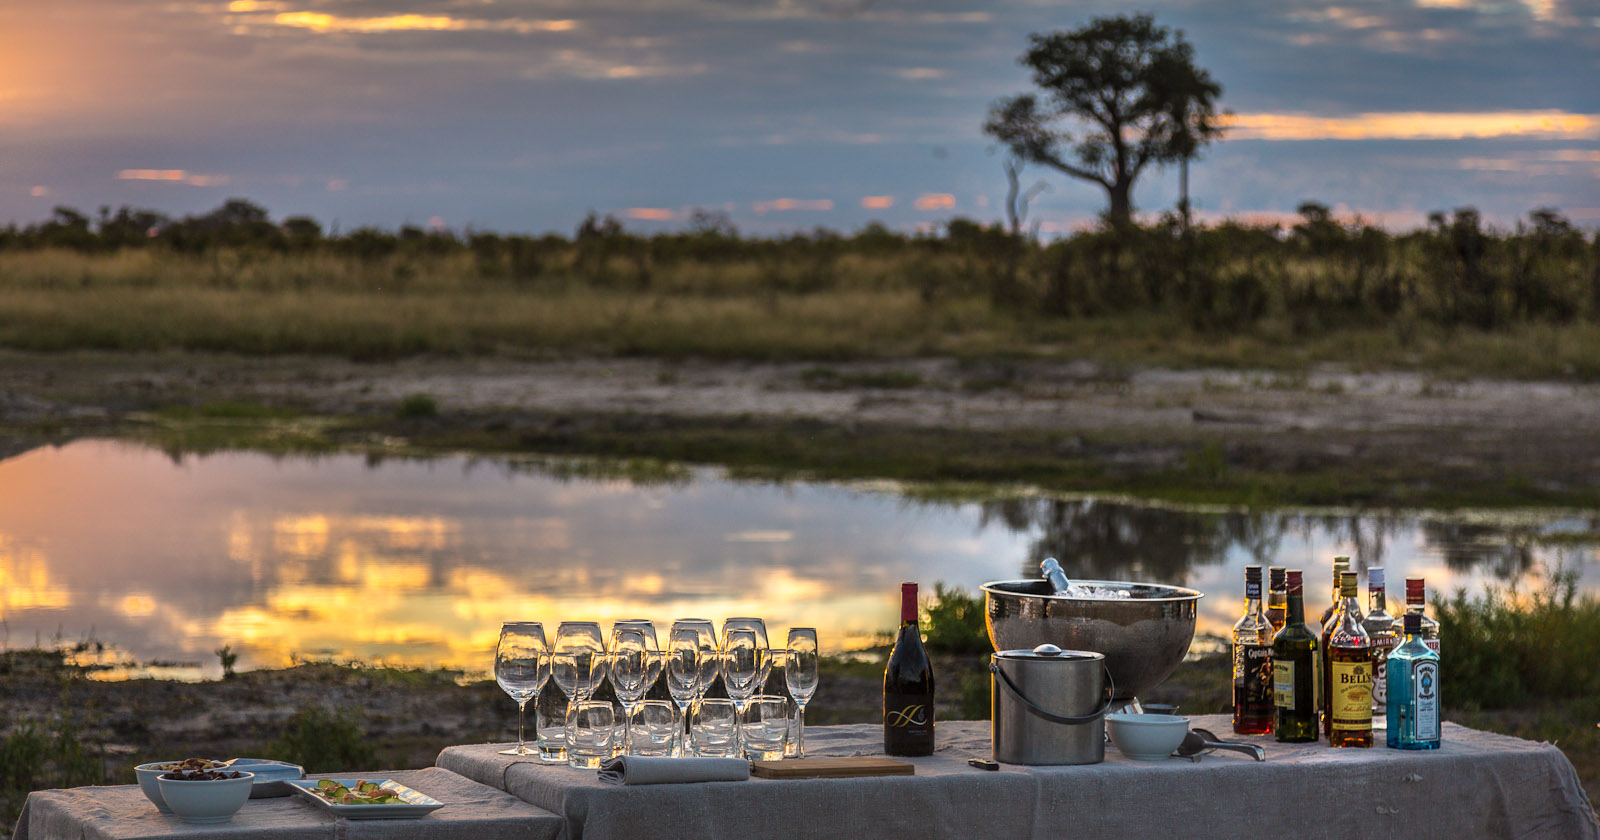 Sundowner set up near Abu Camp in the Okavango Delta, Botswana. Artfully laid out by Takesure for guests who have been interacting with Abu Camps elephant herd. Photo © 2012 Jay Graham, all rights reserved